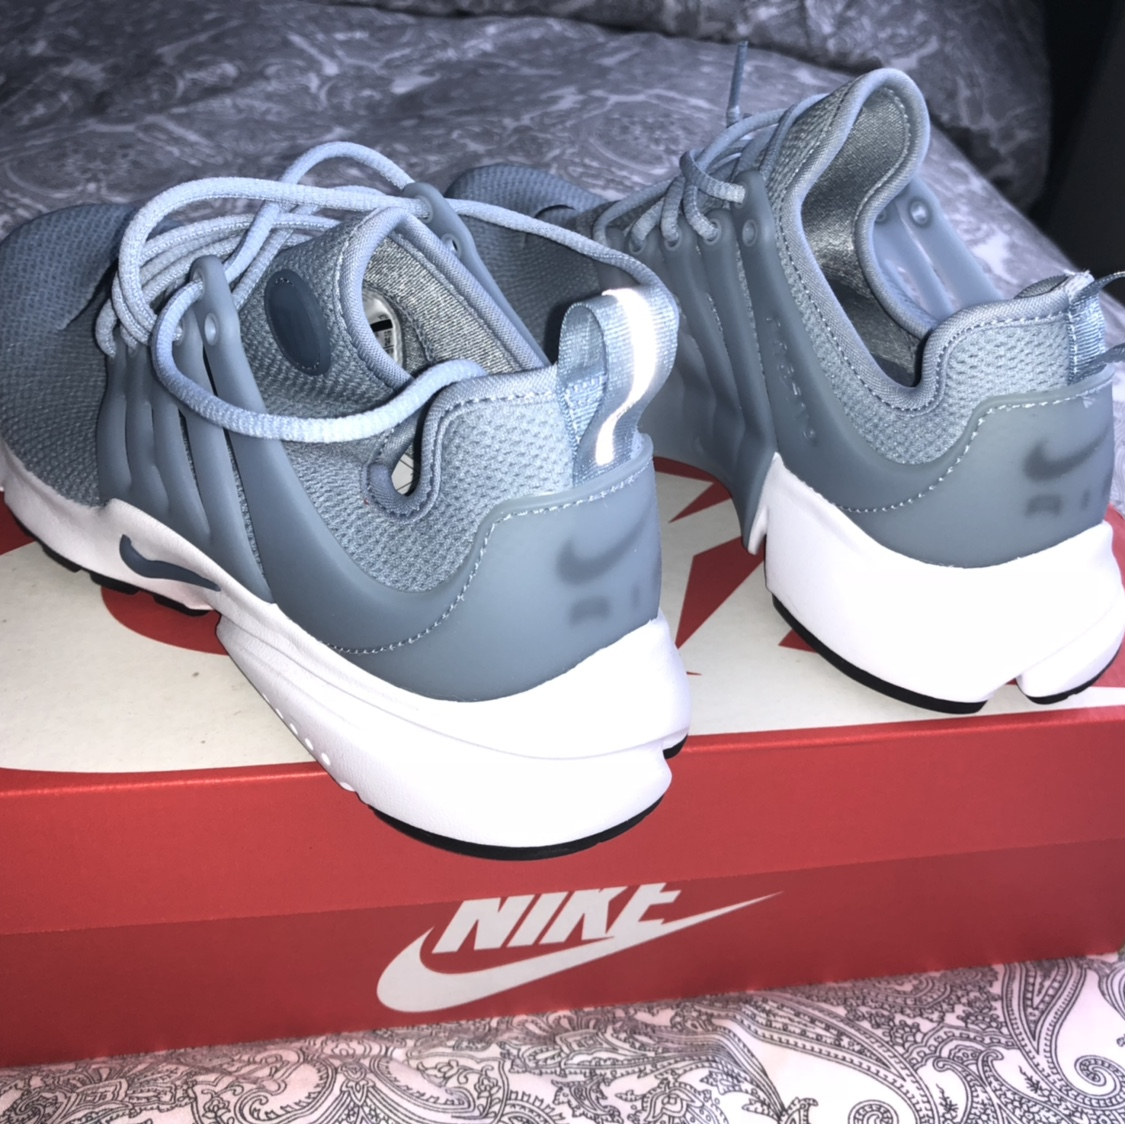 super popular d1cc8 67b77 Nike Air Presto (Baby Blue) Women's UK size 4.5.... - Depop